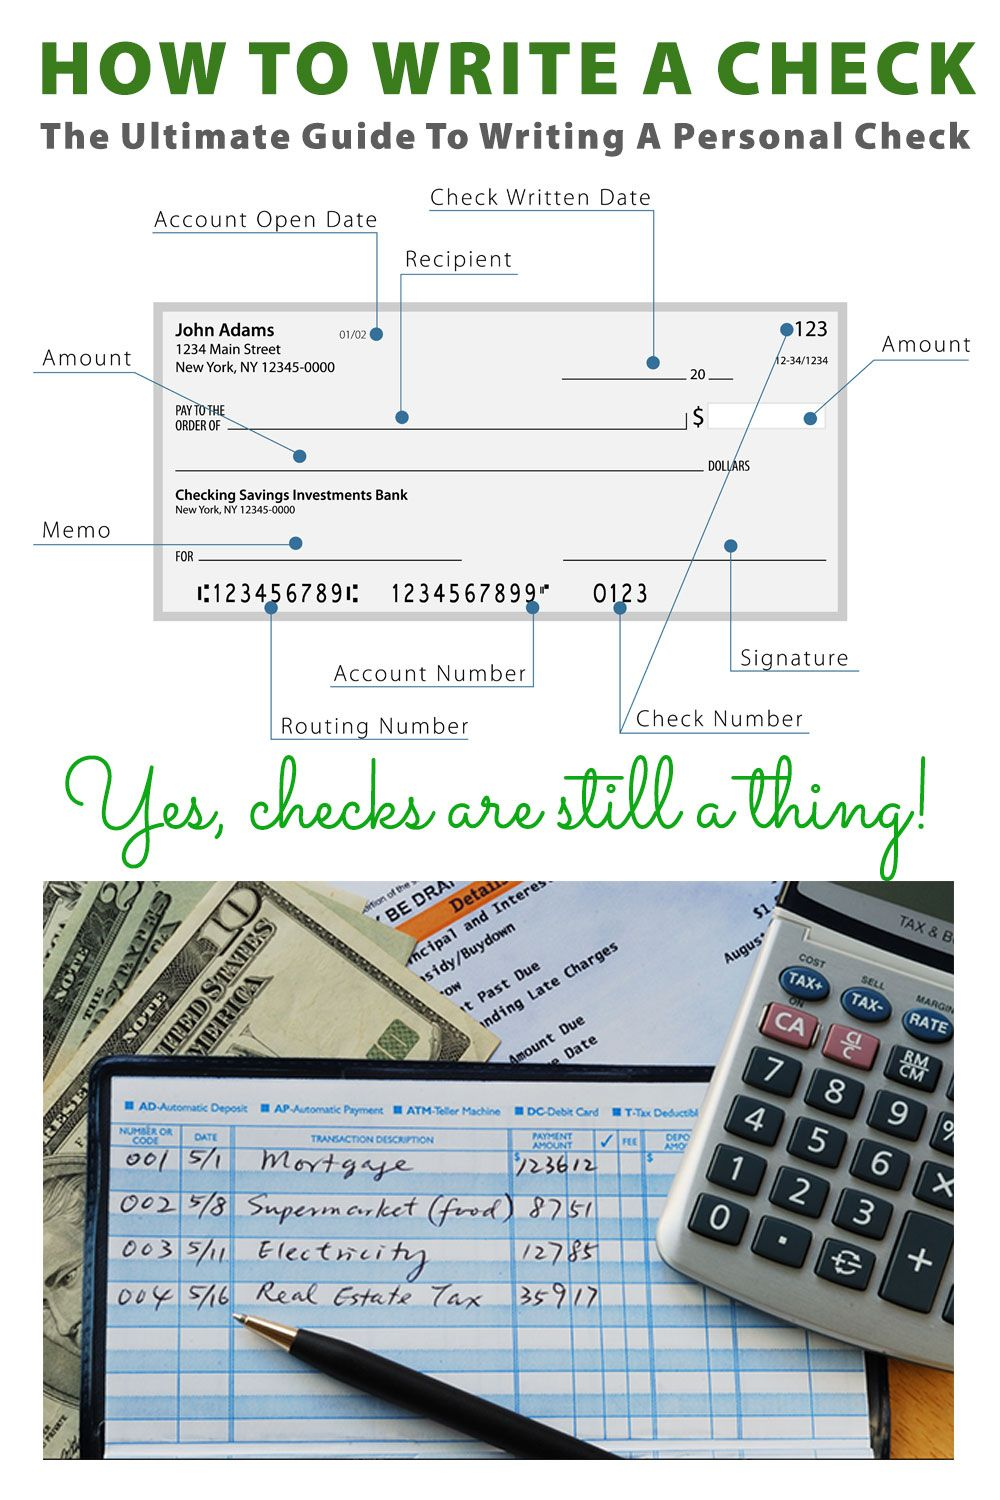 How To Write A Check The Ultimate Guide To Writing A Check Writing Checks Consumer Math Life Skills Class